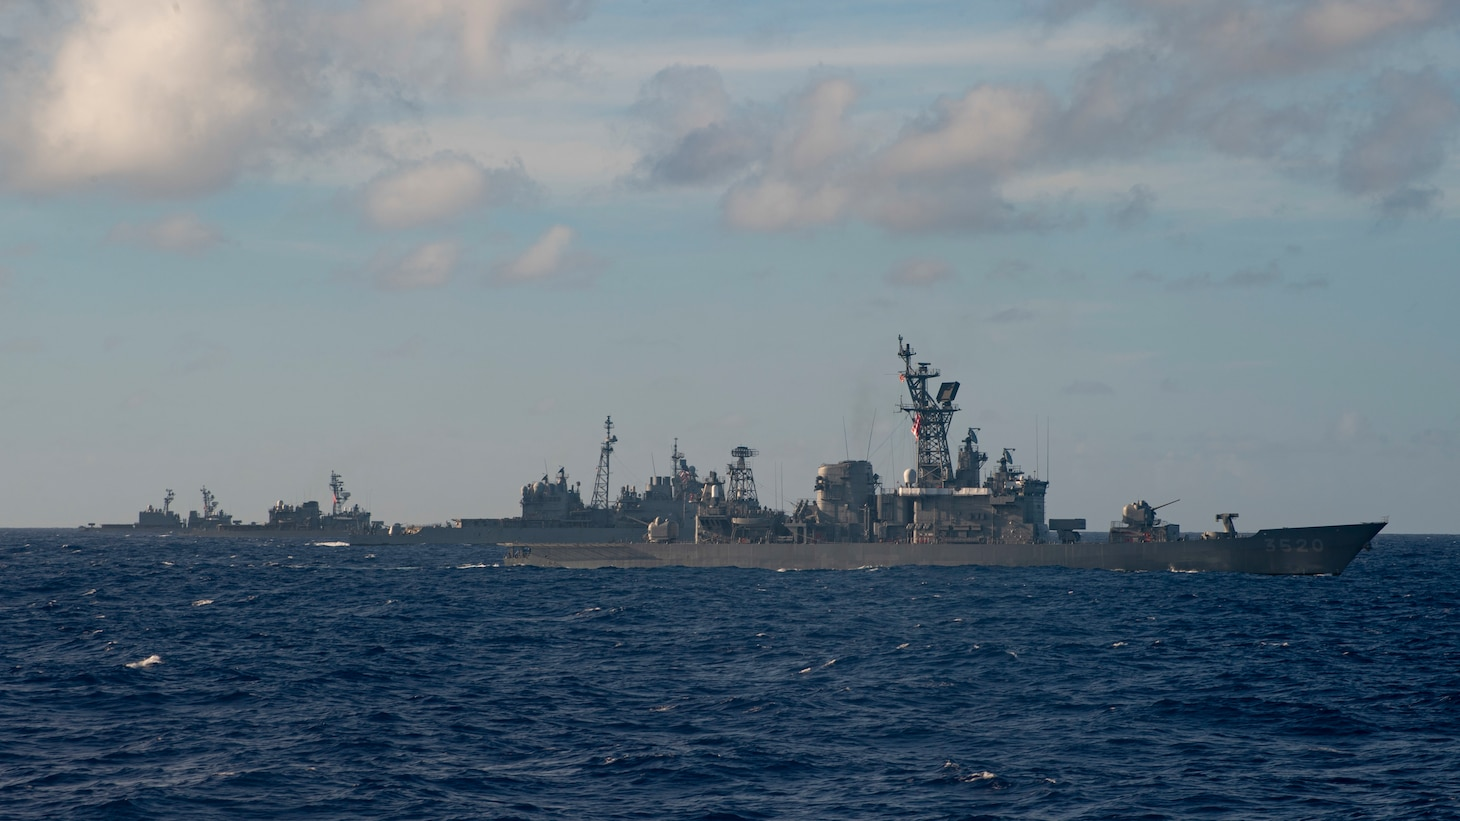 PACIFIC OCEAN (Feb. 28, 2021) – The Japan Maritime Self-Defense Force (JMSDF) Hatakaze-class destroyer JDS Hatakaze (TV 3520), front, Ticonderoga-class guided-missile cruiser USS Bunker Hill (CG 52), center, JMSDF Hatsuyuki-class destroyer JDS Setoyuki (TV 3518), left, and JMSDF Asagiri-class destroyer JDS Yugiri (DD 153) transit the Pacific Ocean Feb. 28, 2021. Bunker Hill, part of the Theodore Roosevelt Carrier Strike Group, is on a scheduled deployment to the U.S. 7th Fleet area of operations. As the U.S. Navy's largest forward-deployed fleet, 7th Fleet routinely operates and interacts with 35 maritime nations while conducting missions to preserve and protect a free and open Indo-Pacific Region. (U.S. Navy photo by Mass Communication Specialist 3rd Class Erik Melgar)